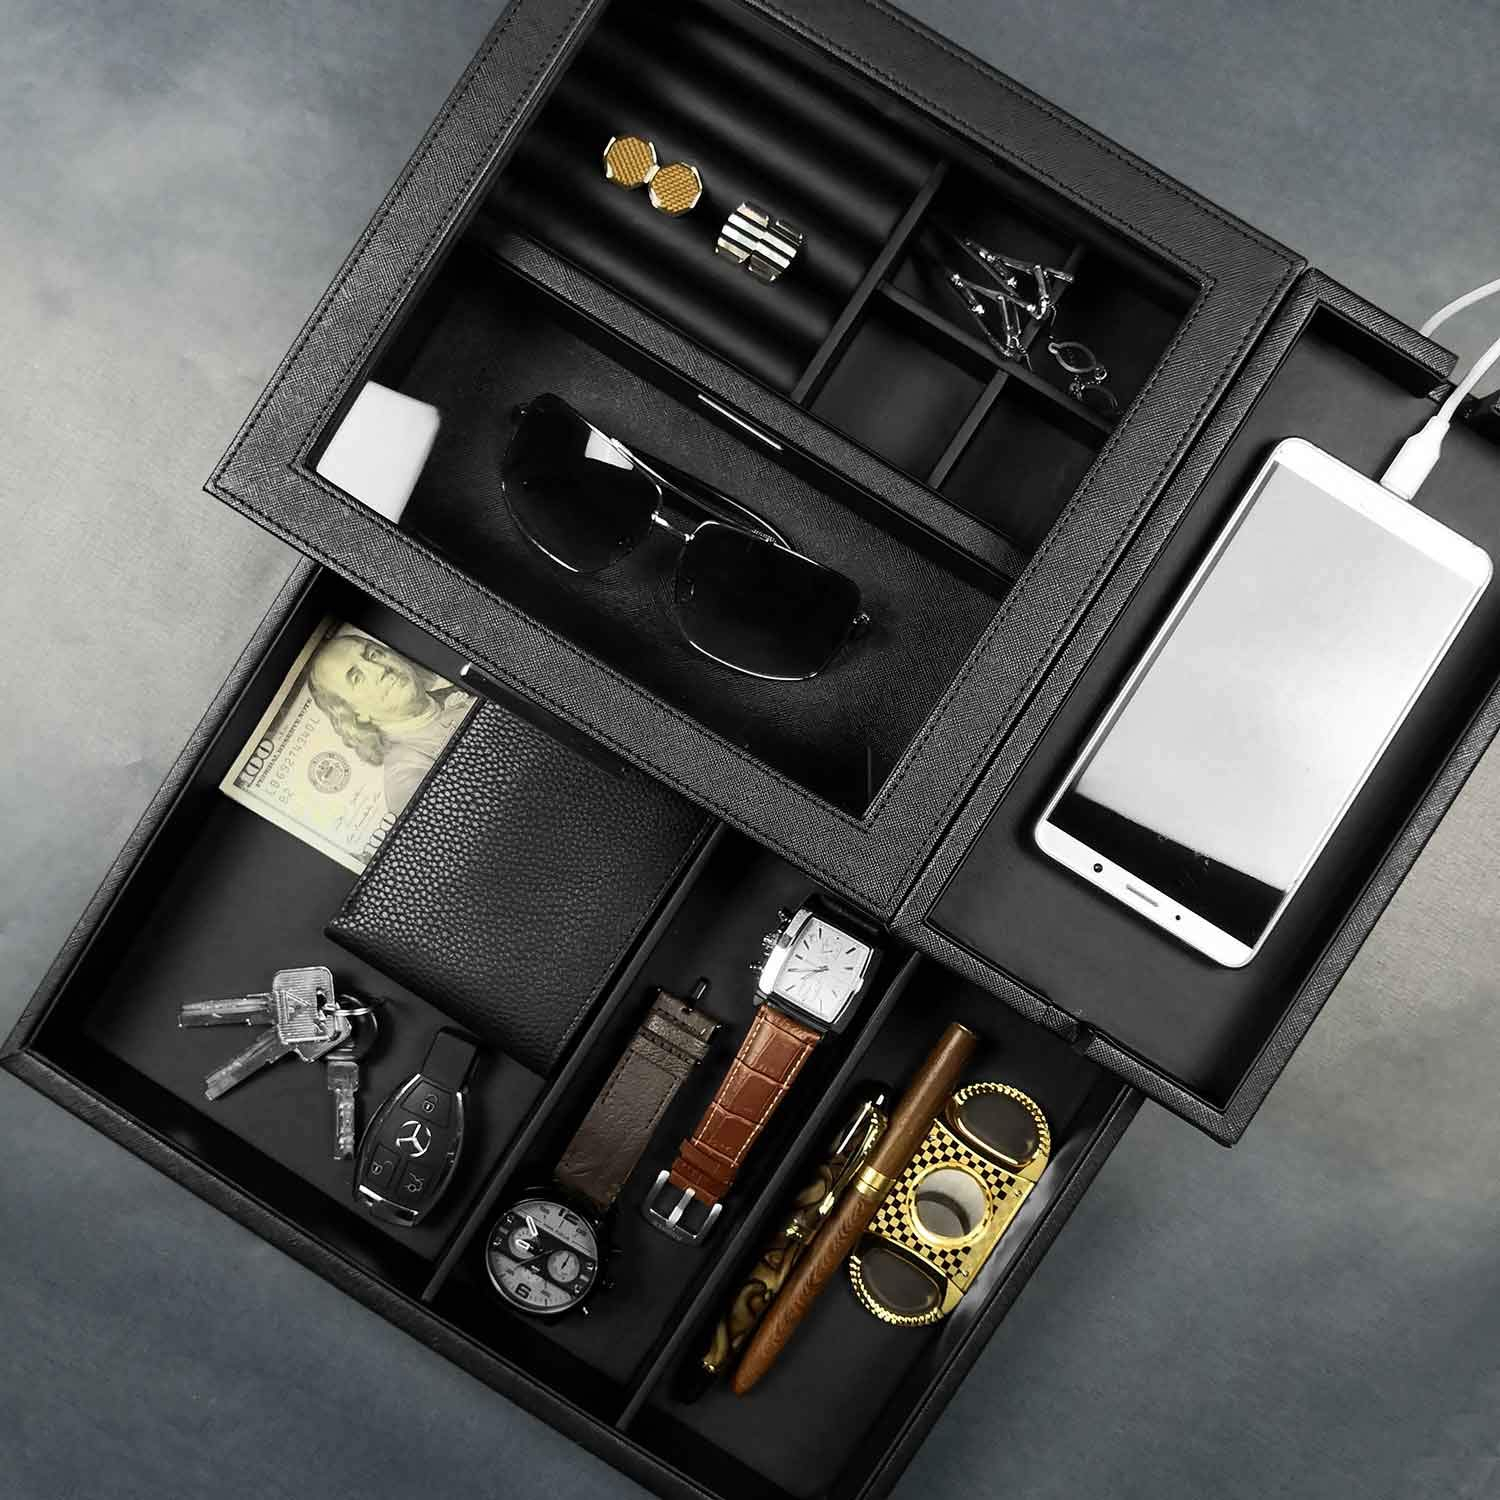 Lifomenz Co Mens Jewelry Box Valet Tray With Drawer And ...